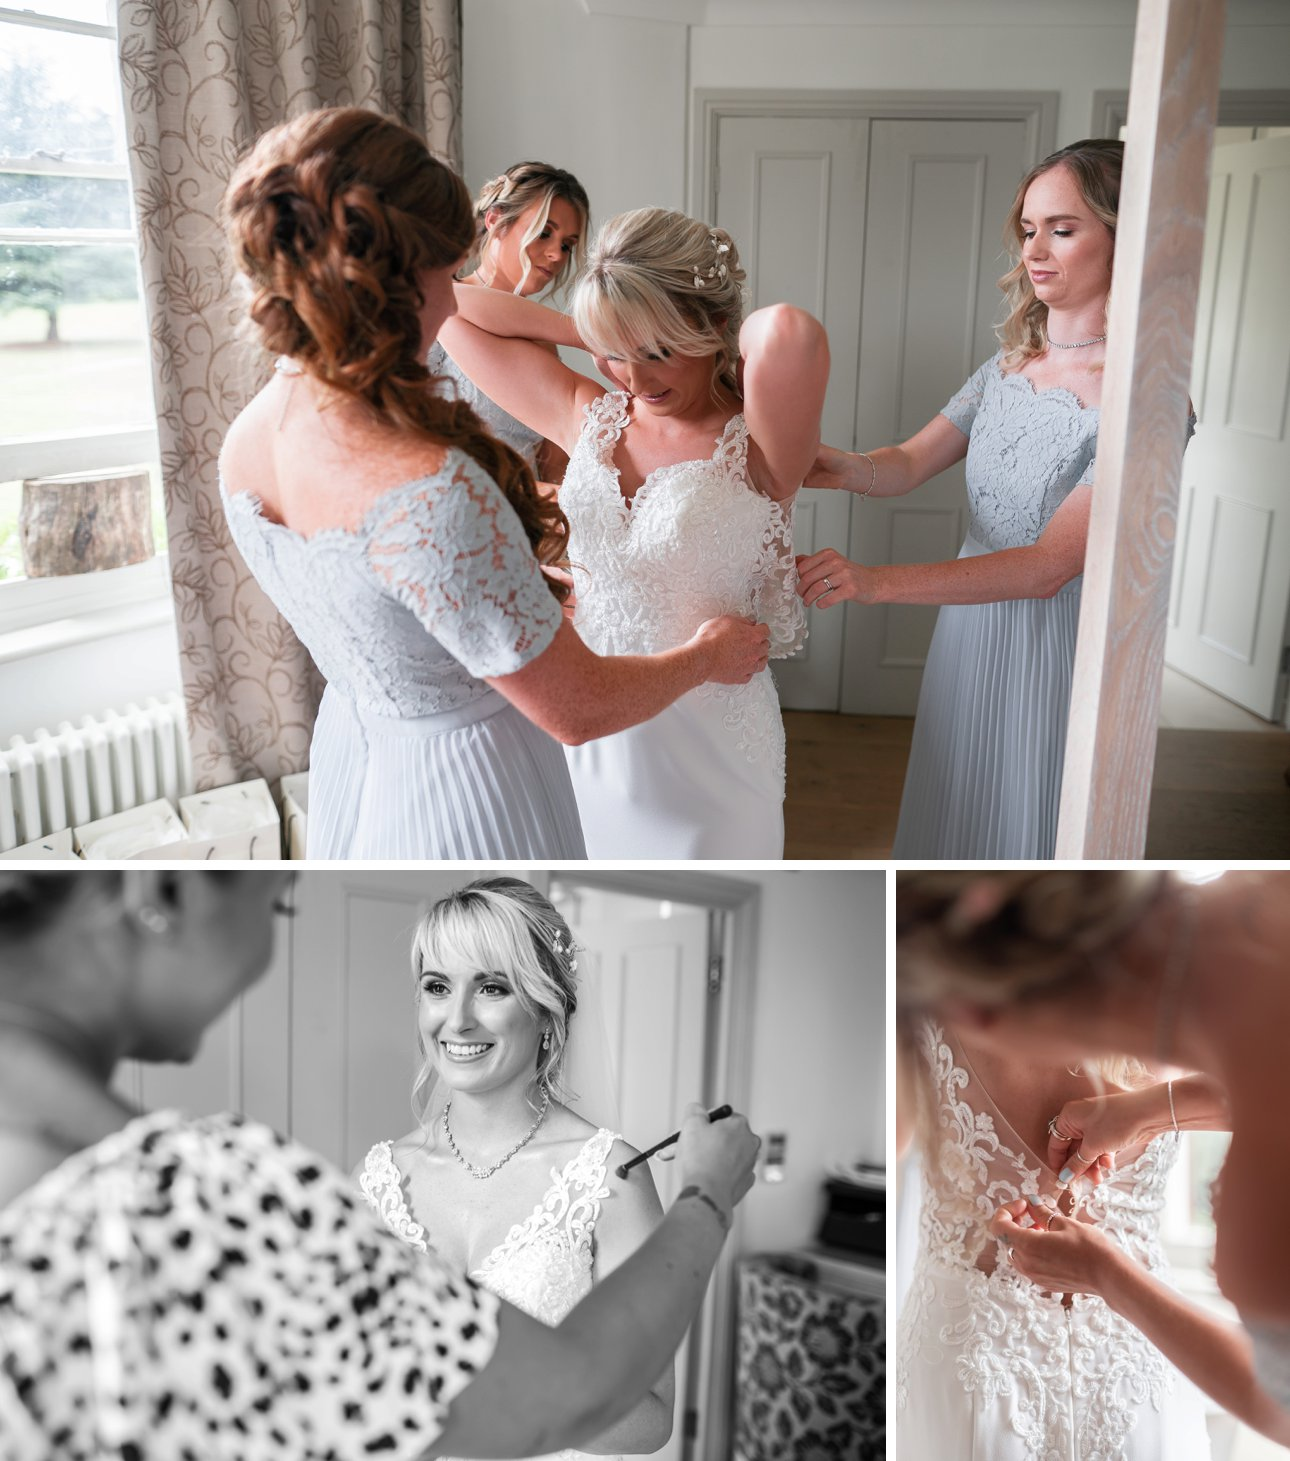 Bride Laura gets into her Wed2B white lace wedding gown at Stoke Place Slough. Her bridesmaids are wearing blue, lace and pleated dresses.